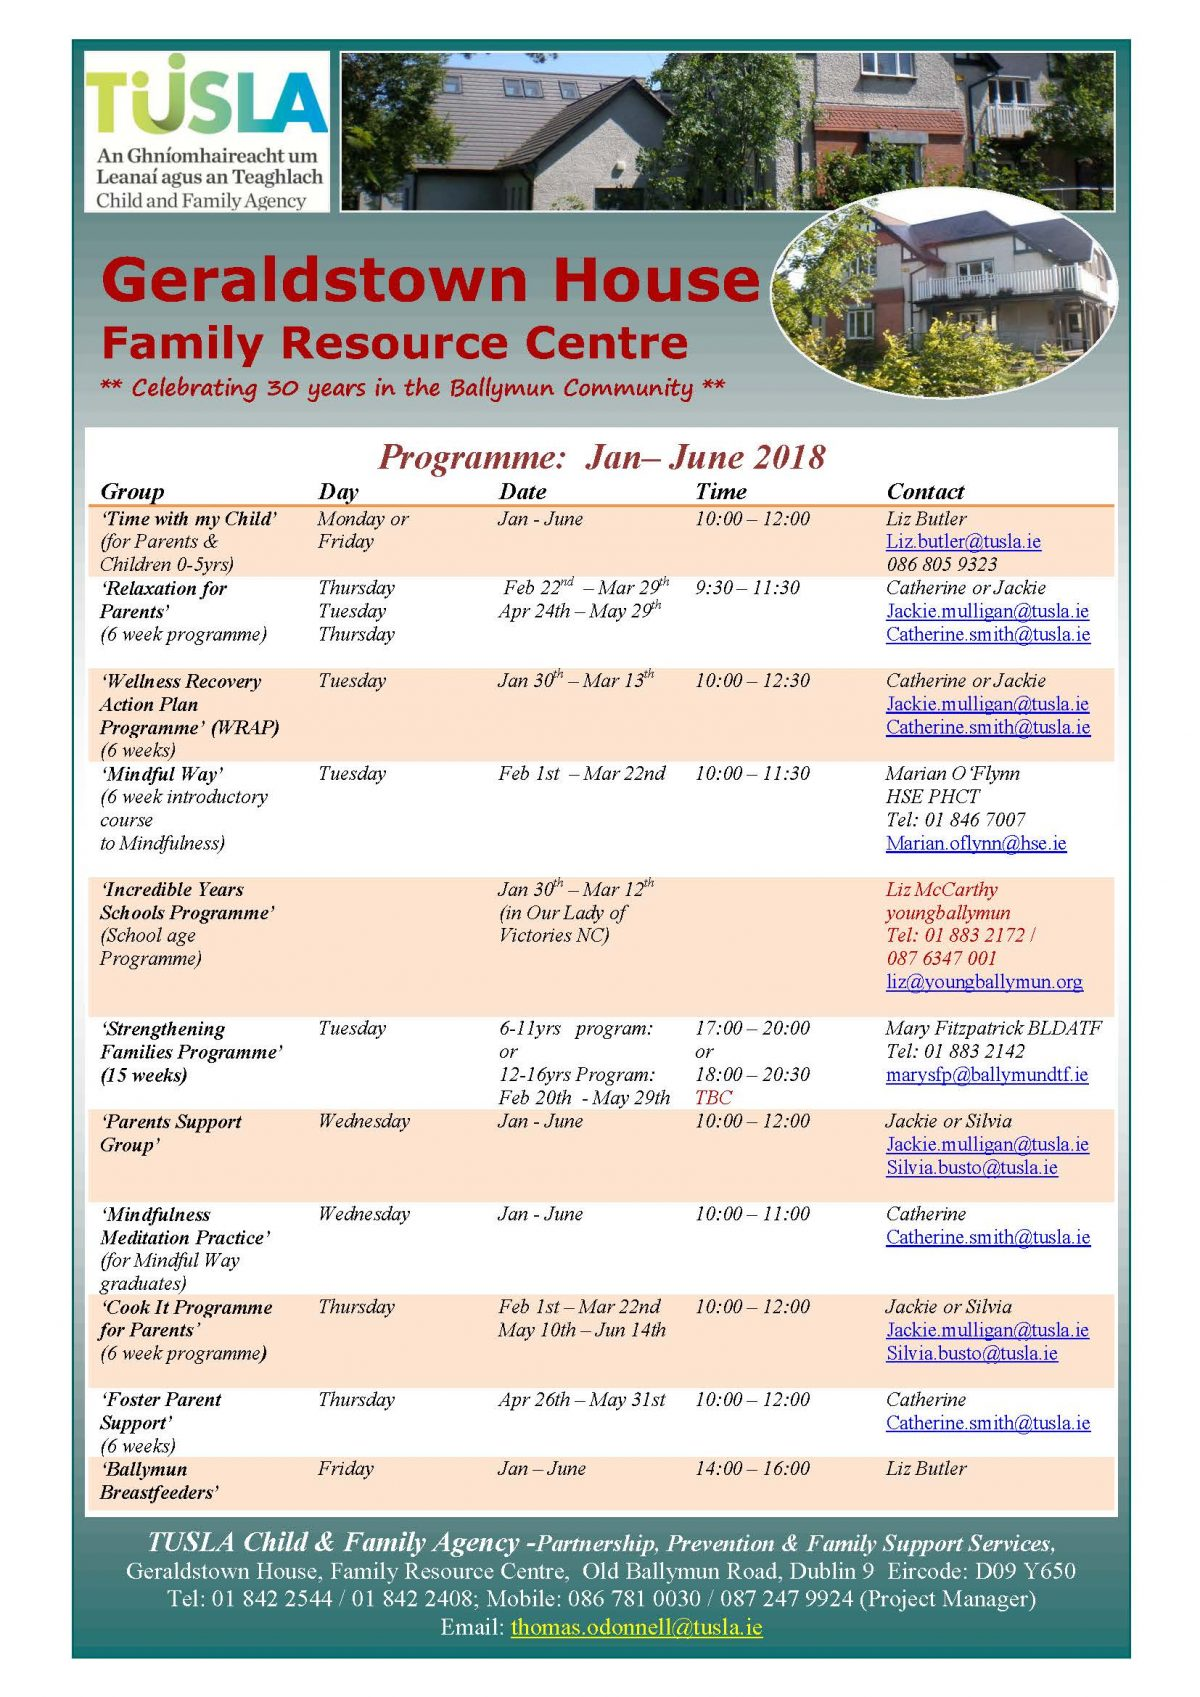 Geraldstown House, Family Resource Centre Programmes 2018